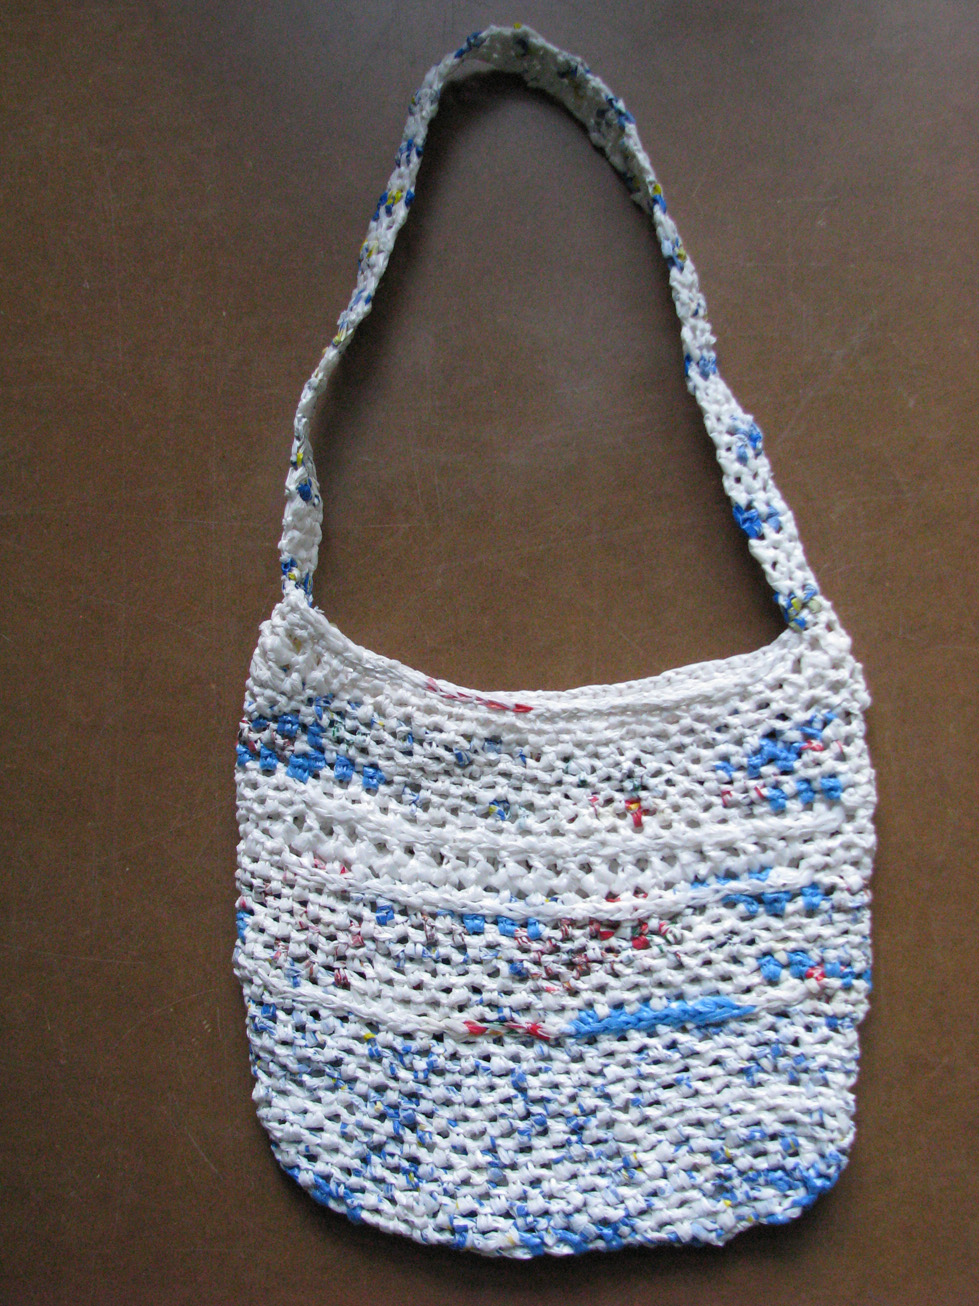 Crocheting With Plastic Bags : crochet plastic bag